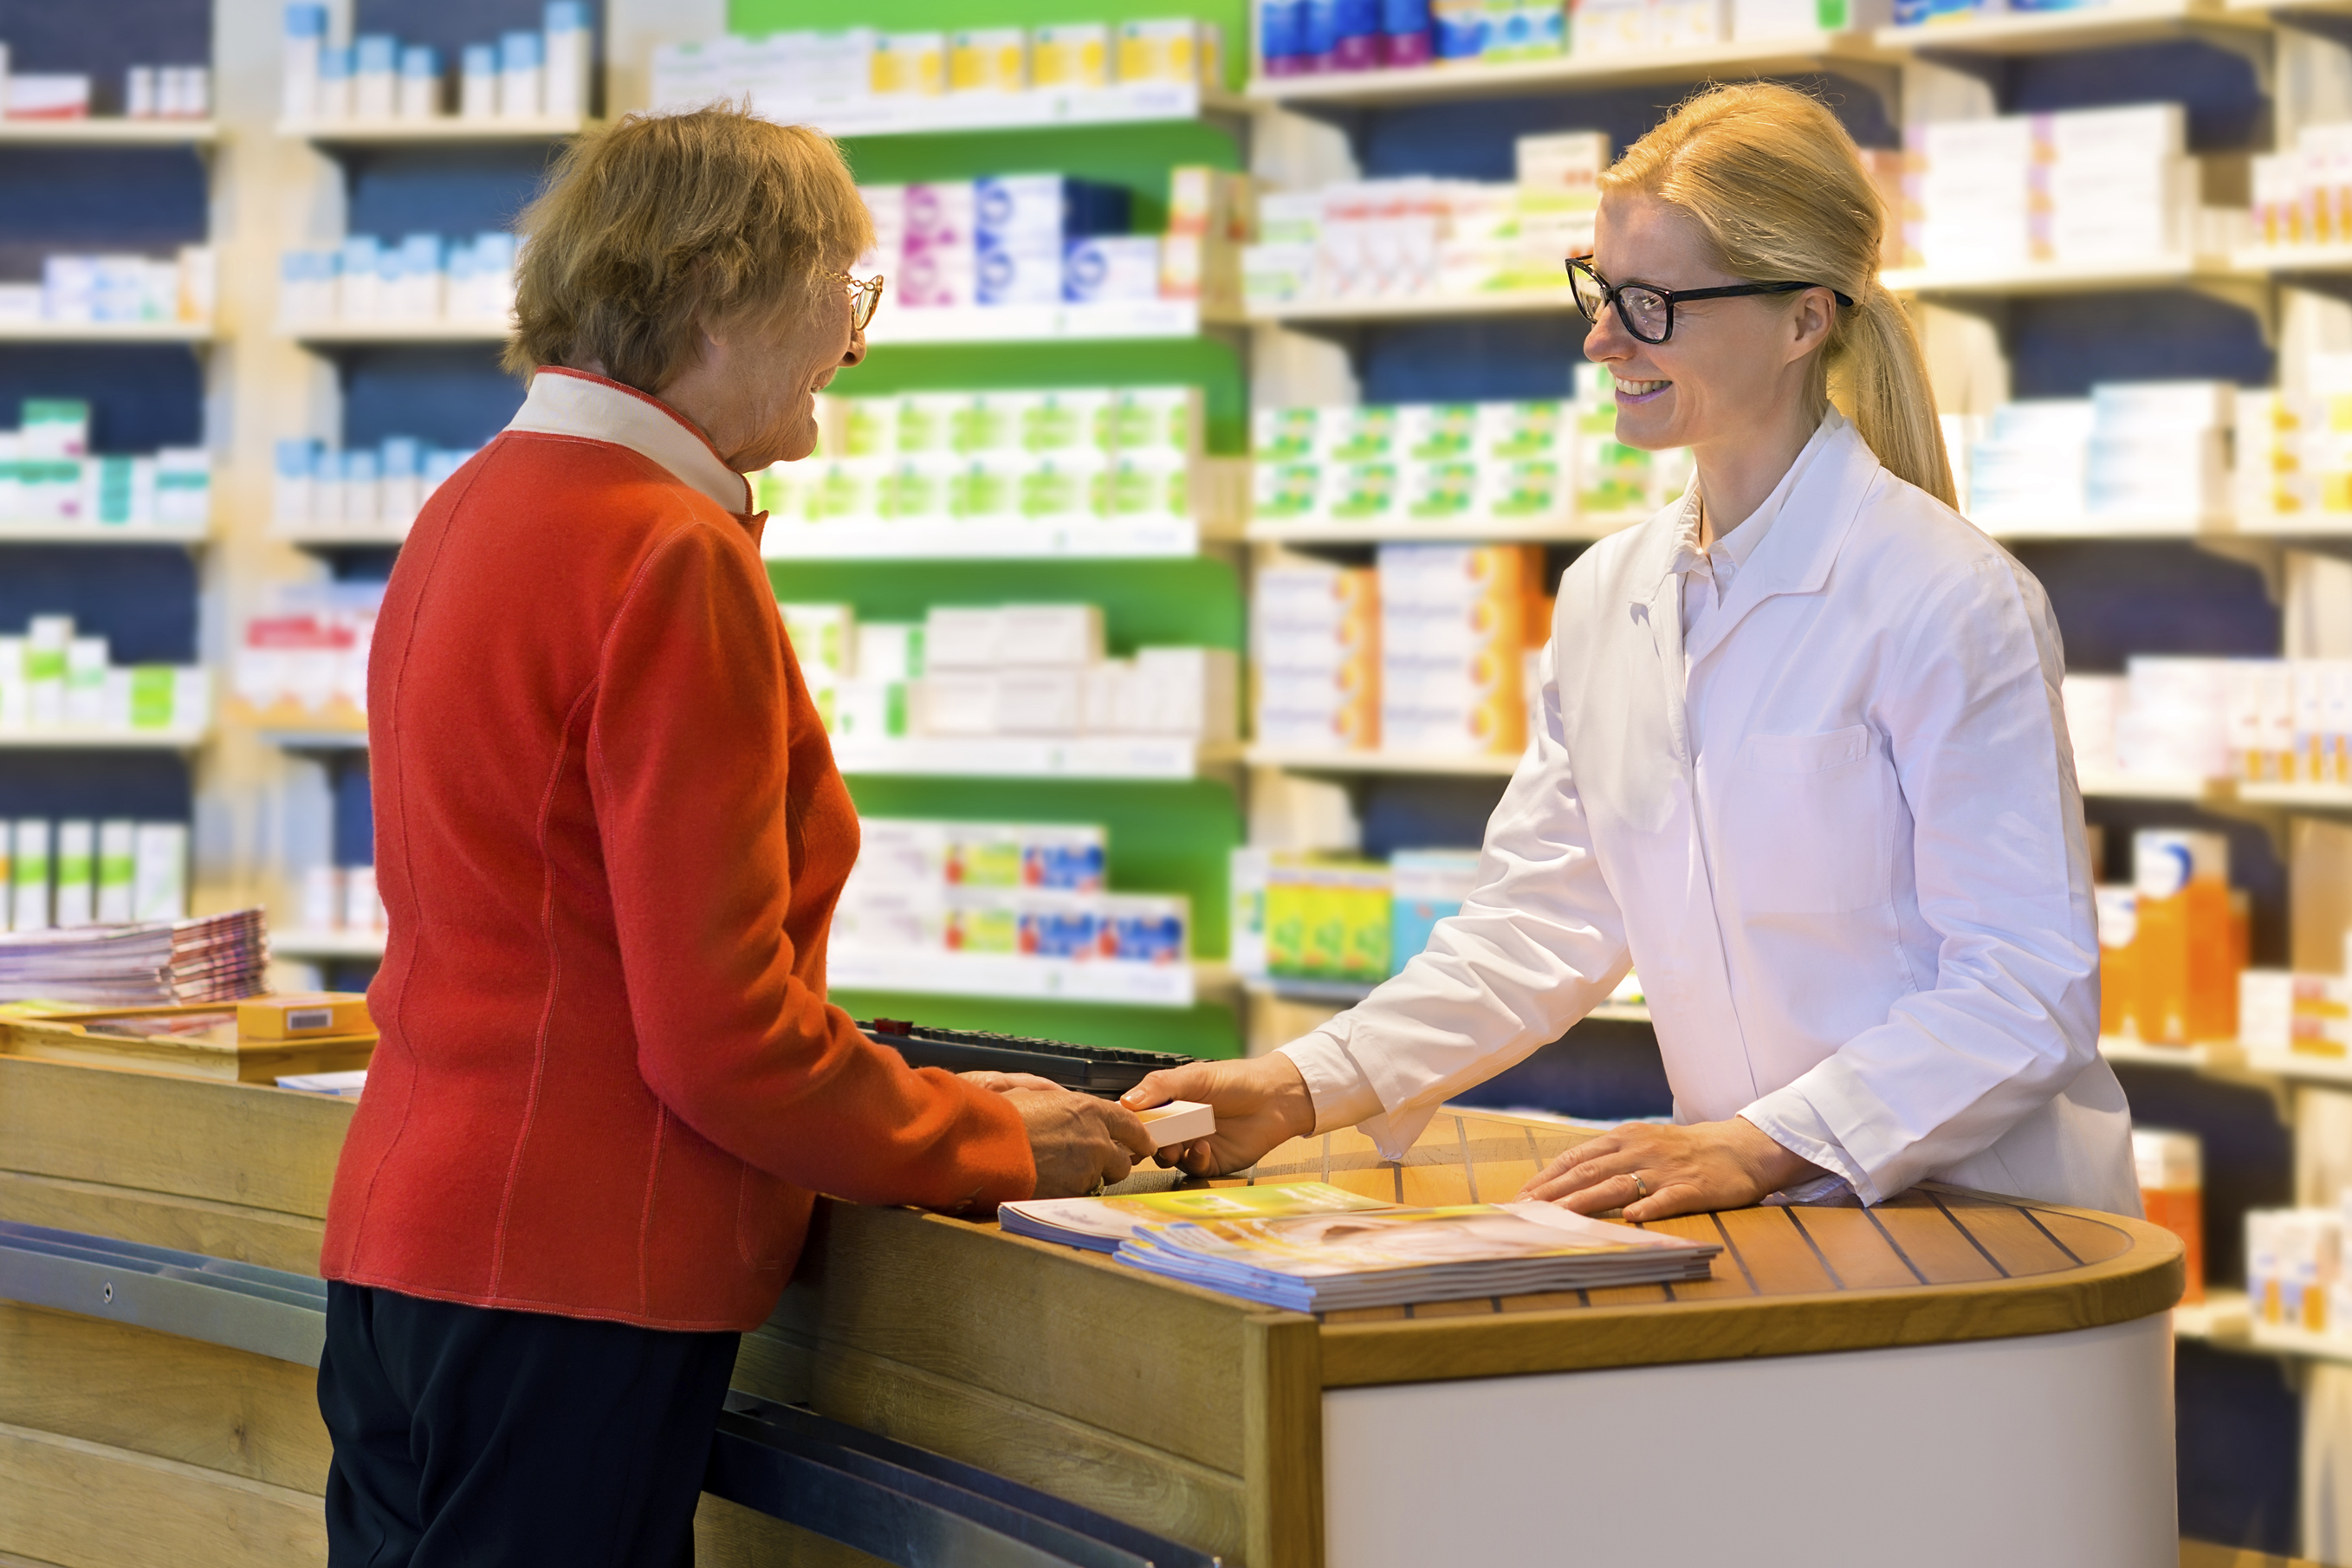 Brexit affecting supplies of generic drugs, say pharmacists